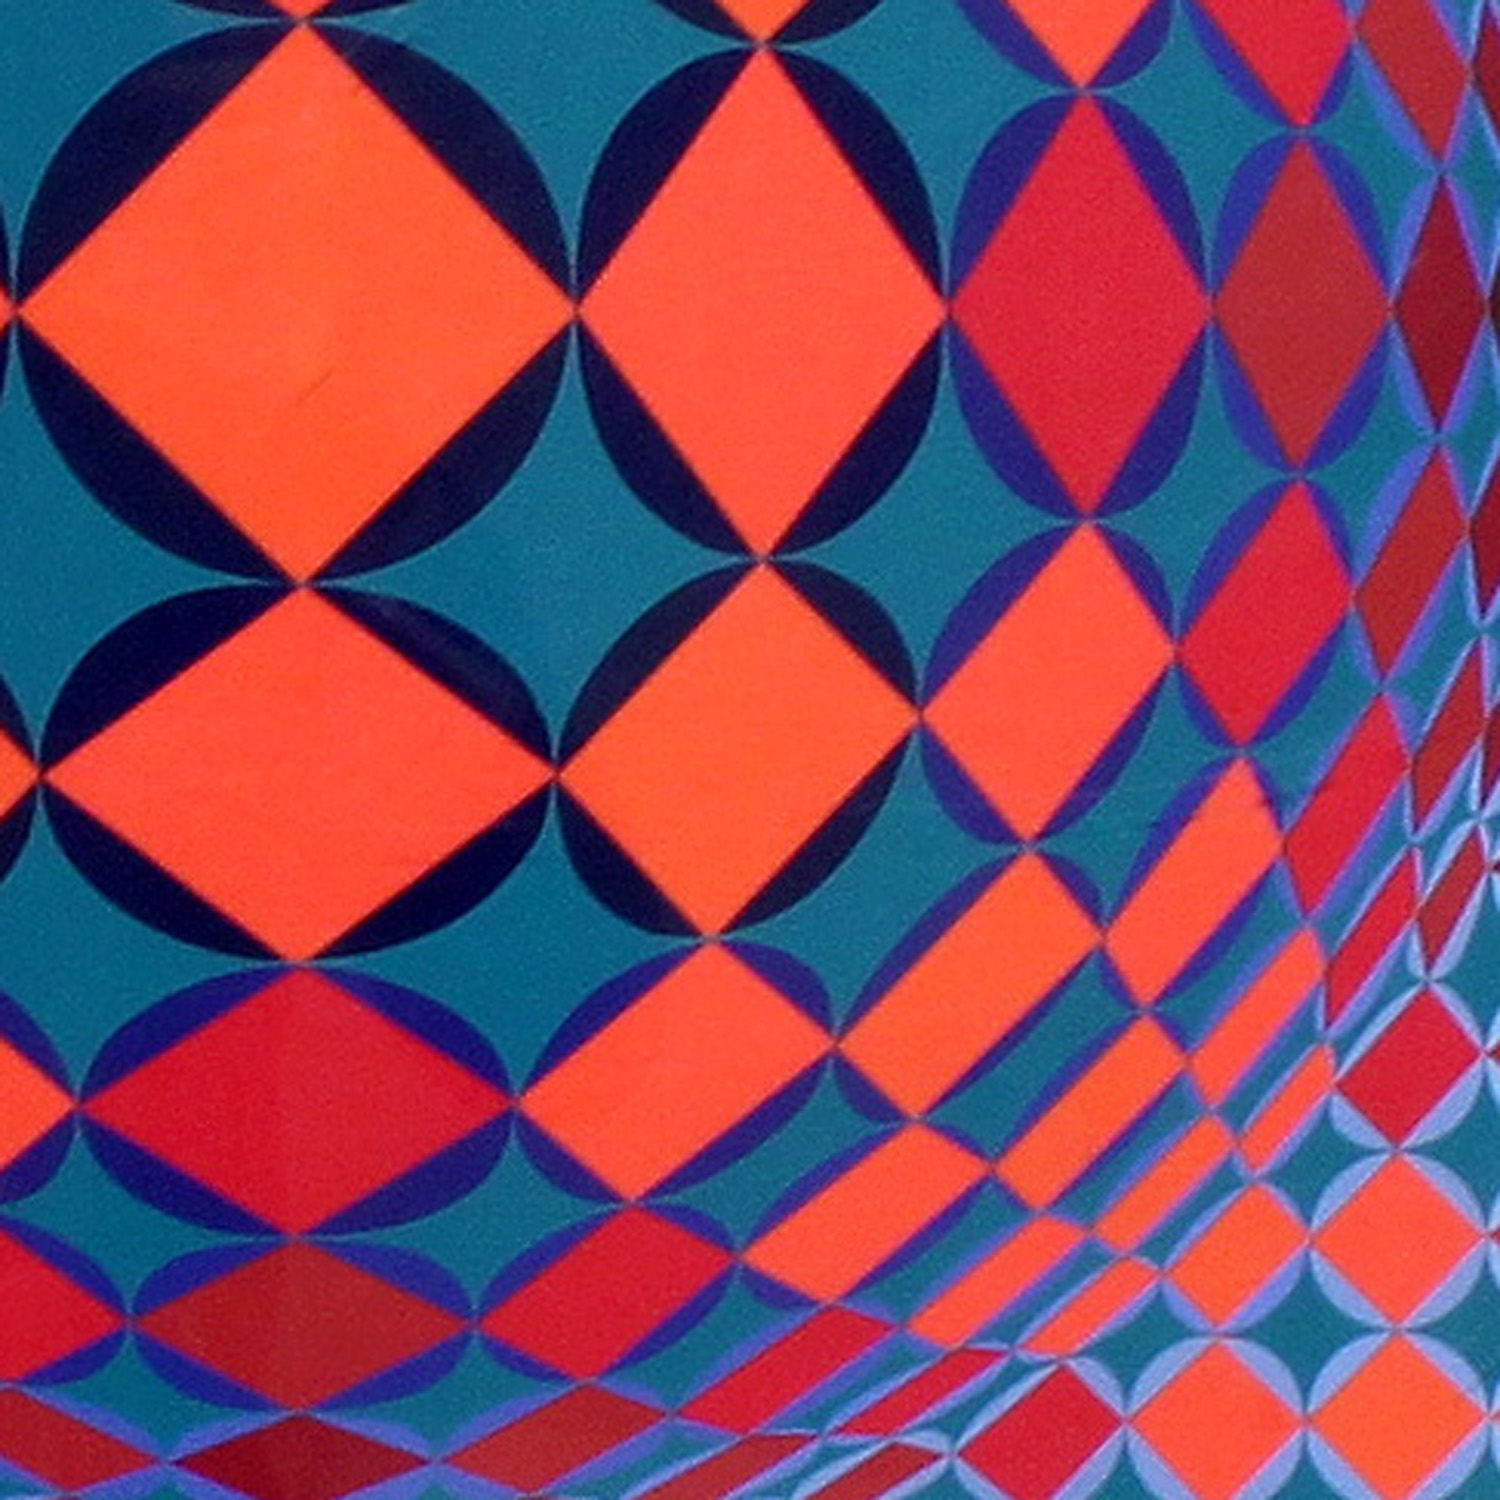 Vasarely 25 litho colorful geom painting59 hires detail.jpg